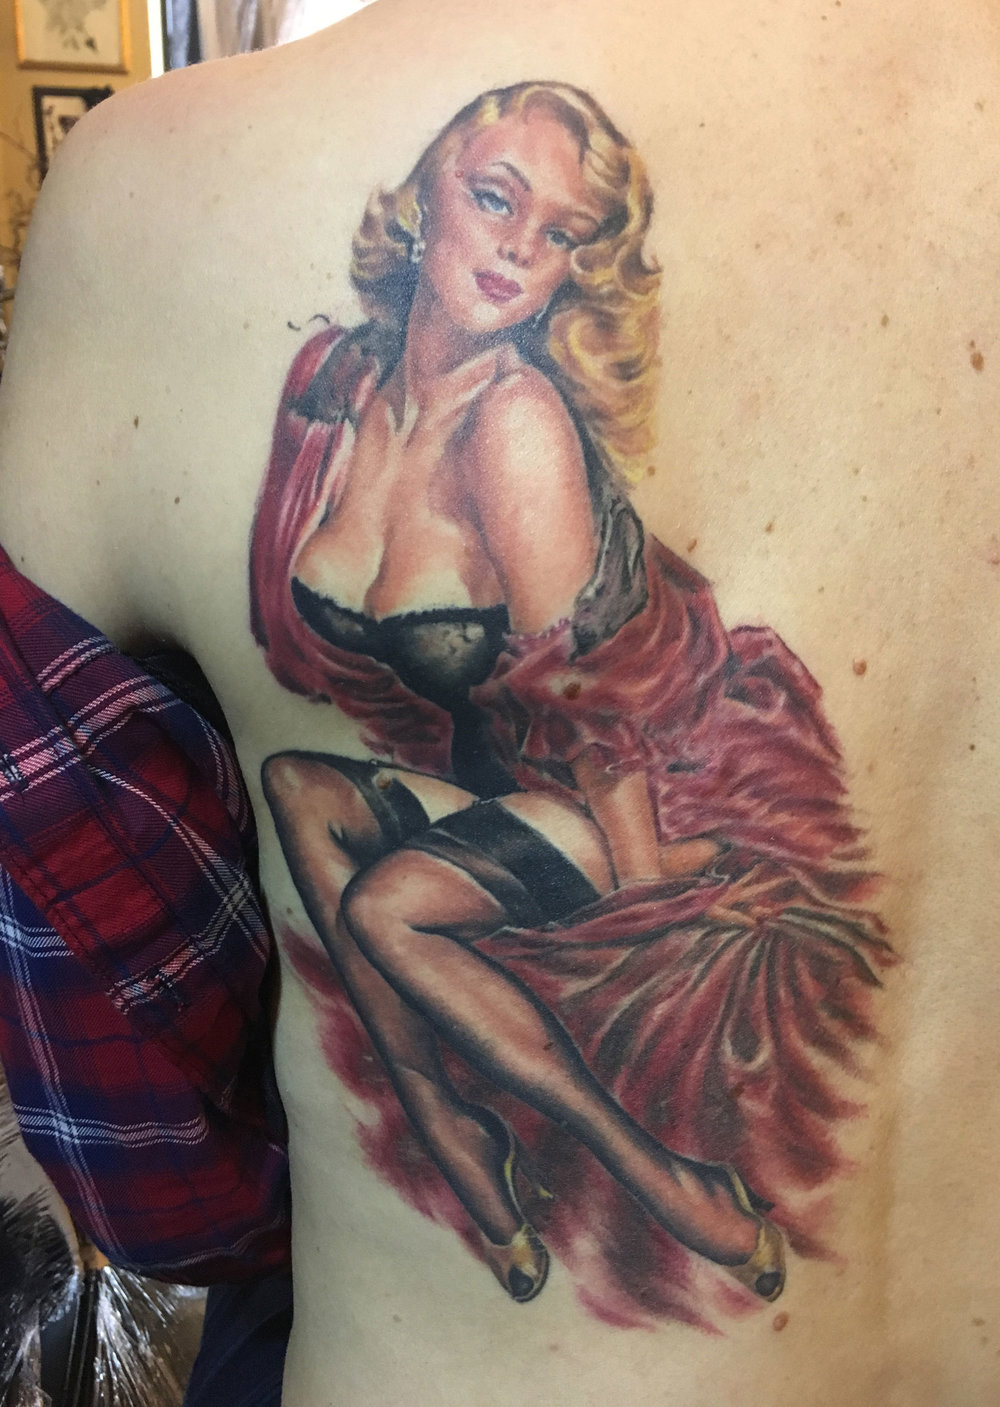 Color Pin Up Tattoo Inspired by Elvgren Reference.  Custom modified for both mine and the client's personal aesthetic tastes, and better compatibility with the tattoo medium (healed) 2016